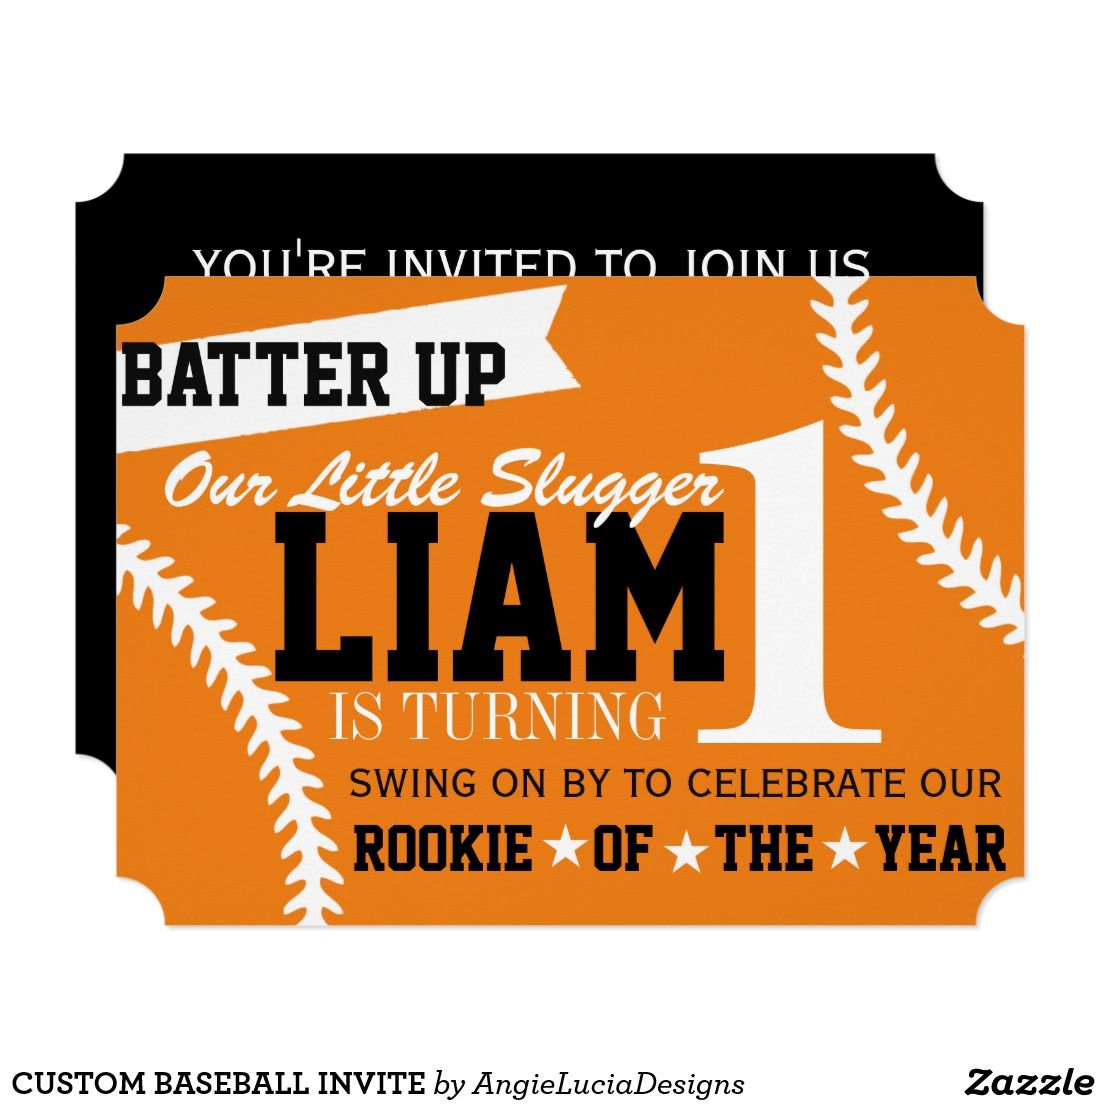 CUSTOM BASEBALL INVITE